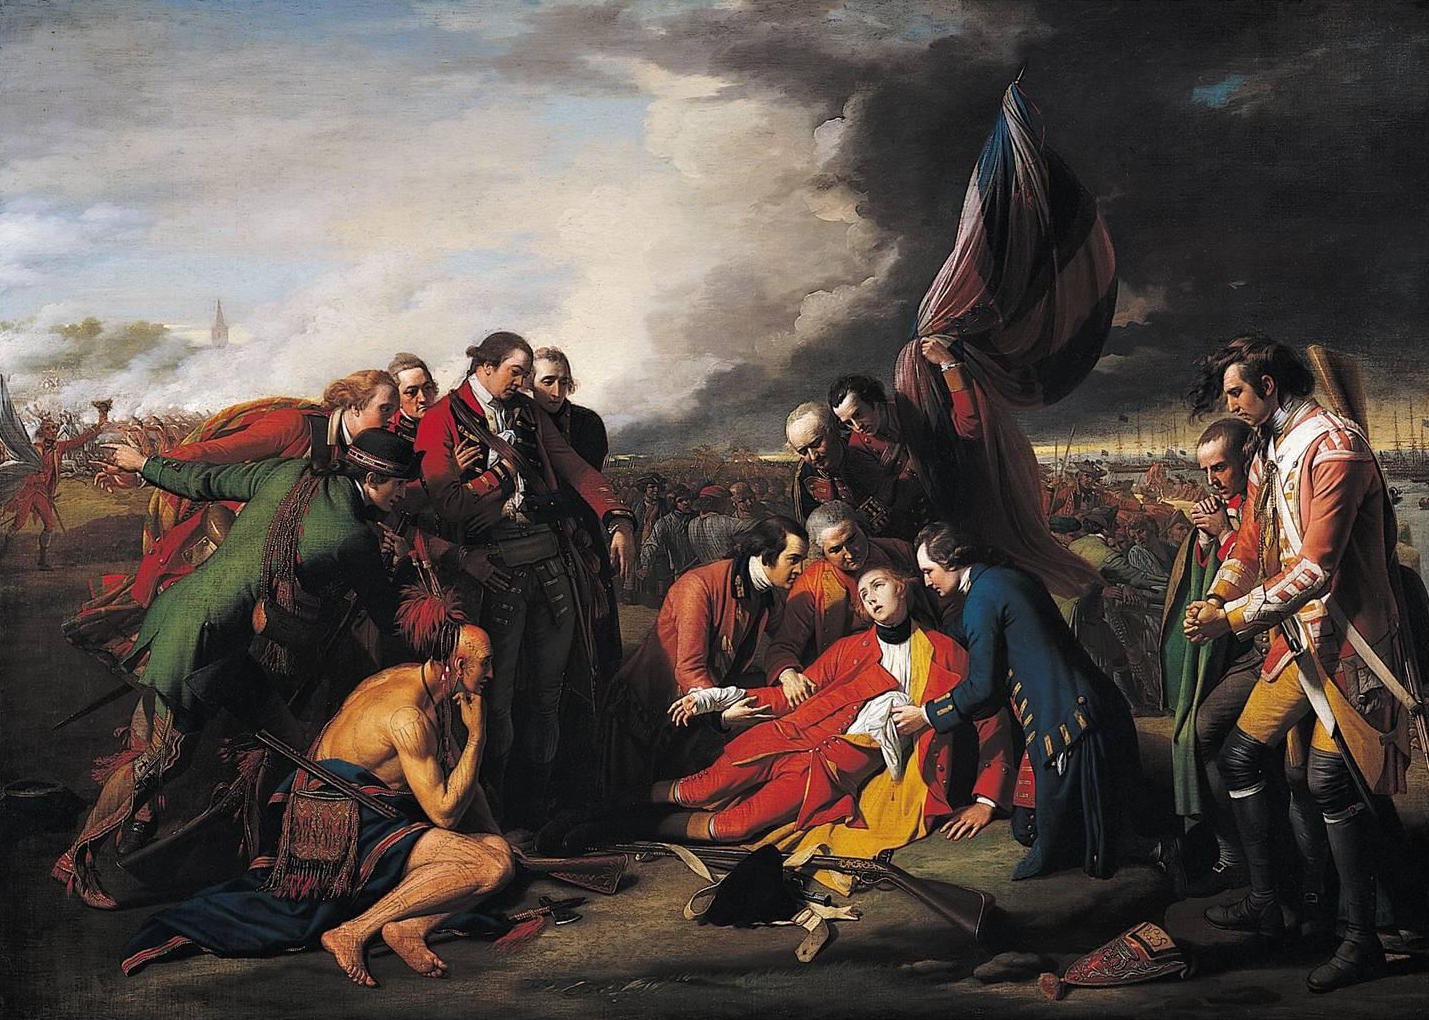 Benjamin West, The Death of General Wolfe, 1770, oil on canvas, 152.6 x 214.5 cm (National Gallery of Canada)